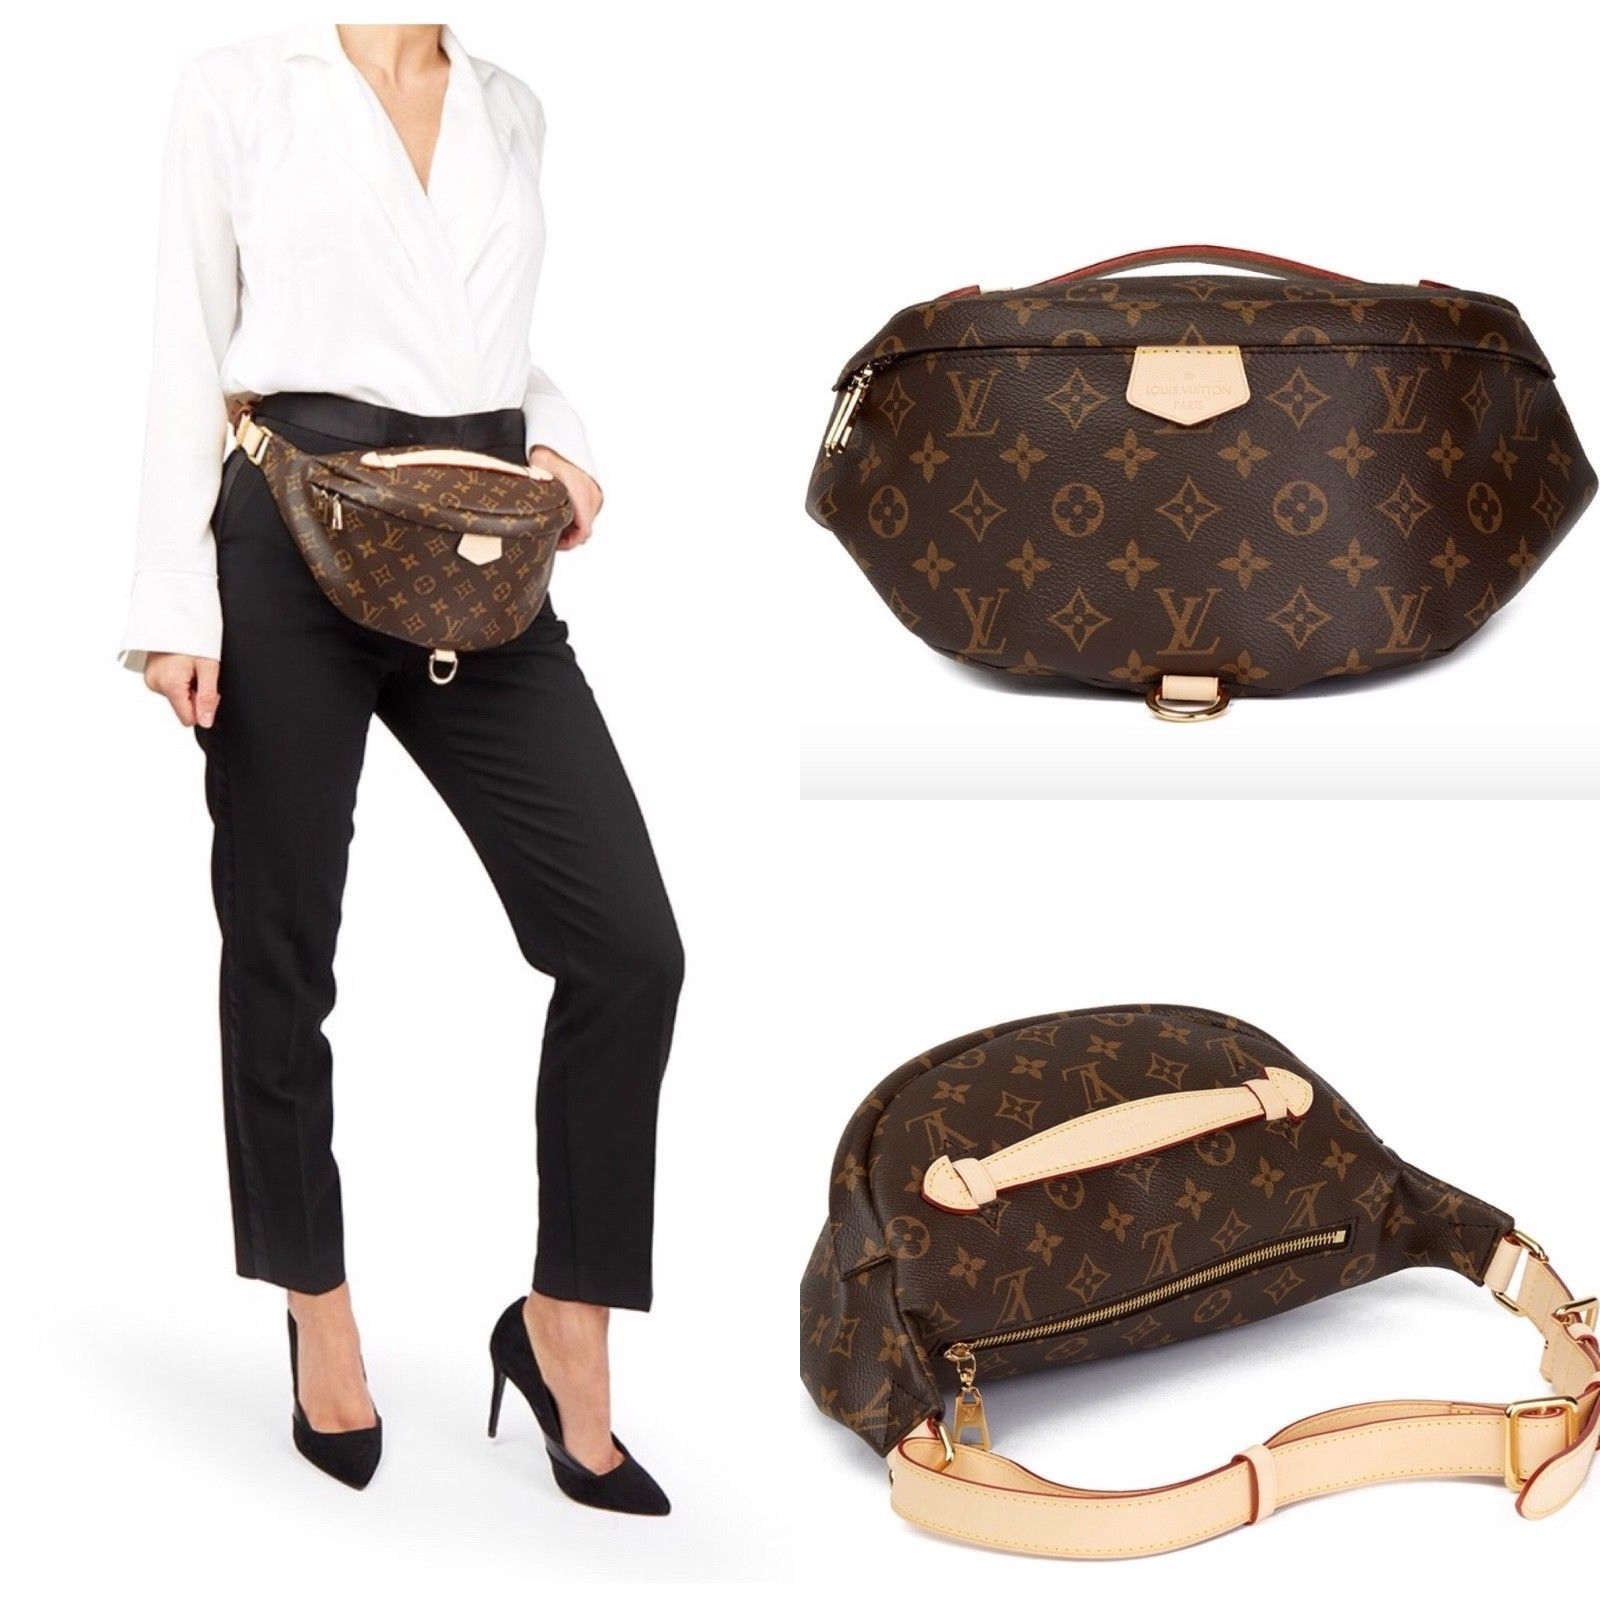 d76406911faf Louis Vuitton Monogram Bumbag Fanny Pack Bag 2018 FRANCENEW! Find this Pin  and more on ...